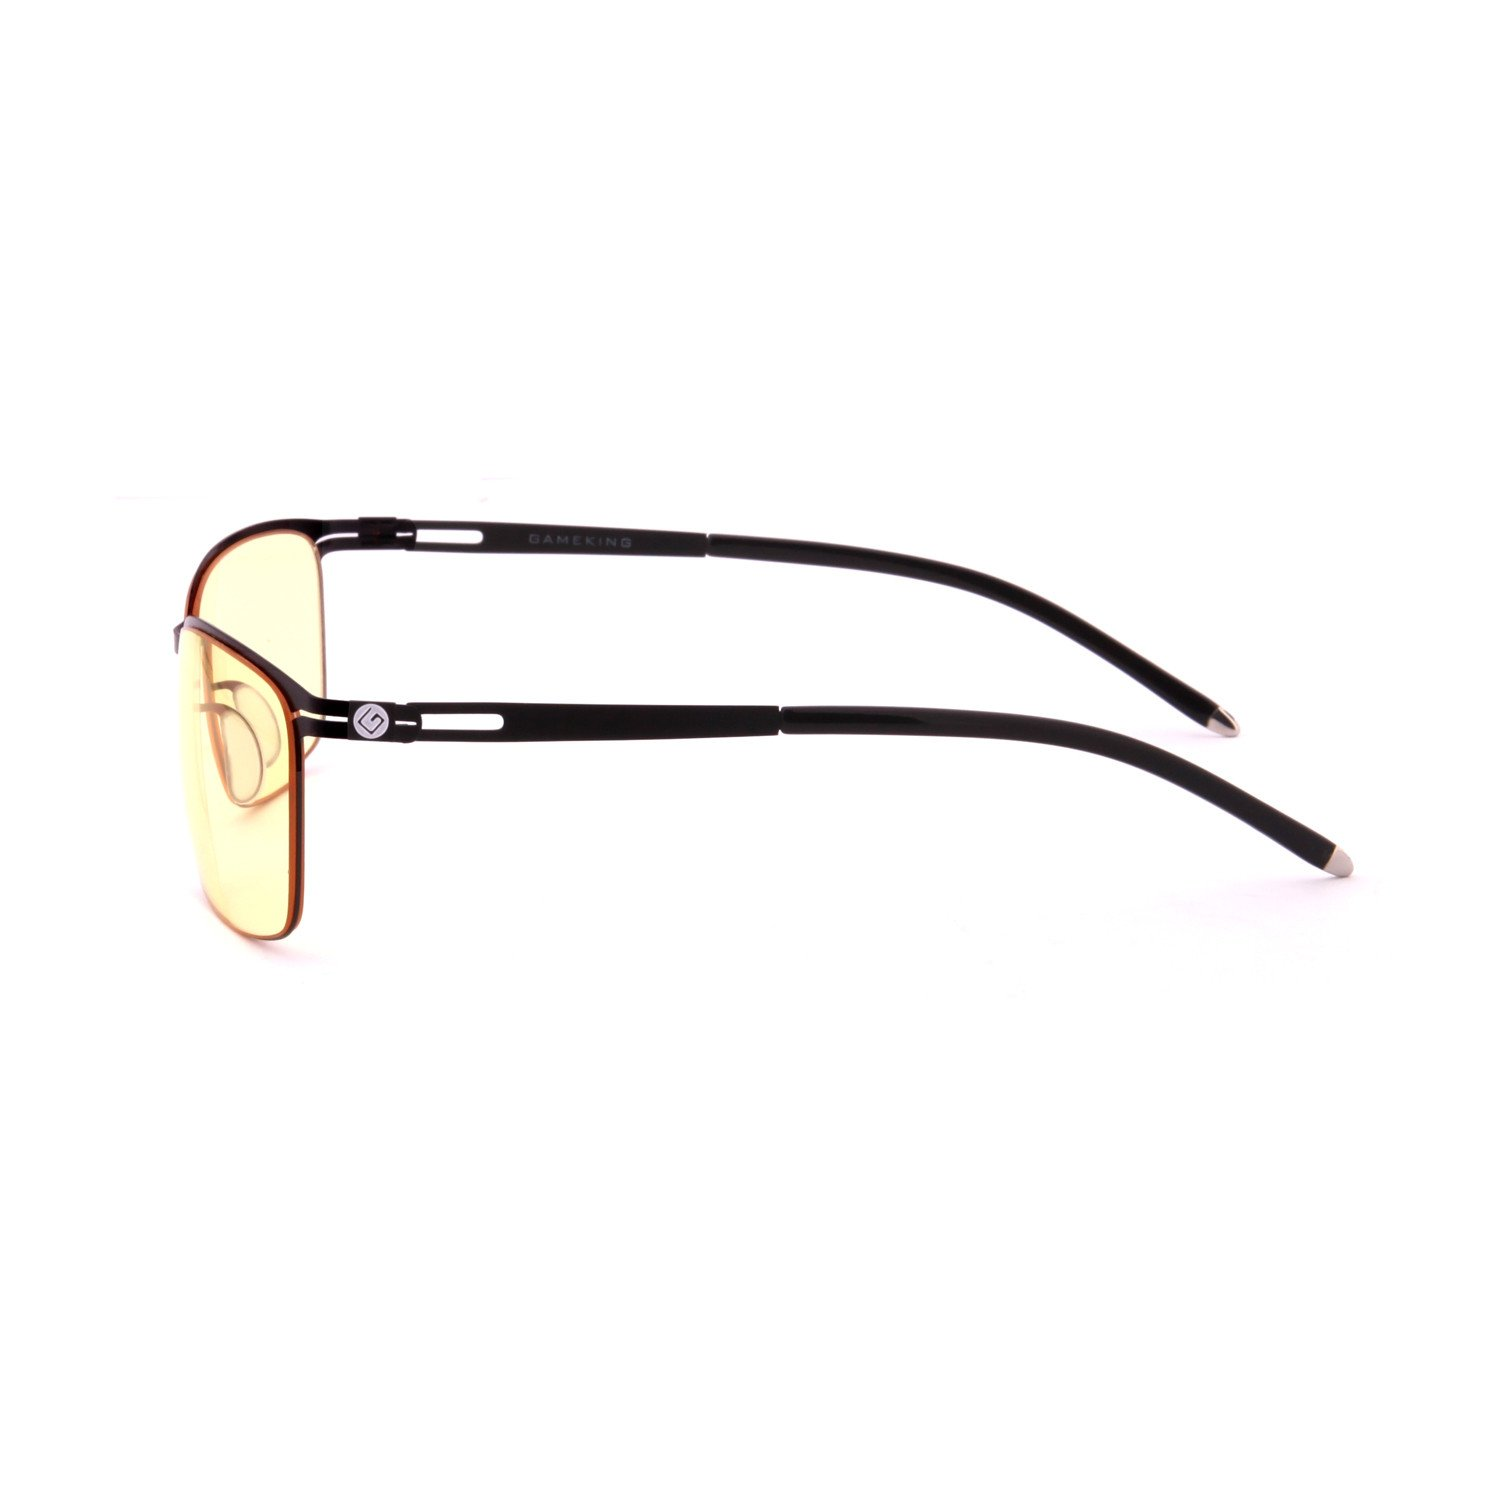 GAMEKINGUltra G604 Computer Glasses - CrystalHill